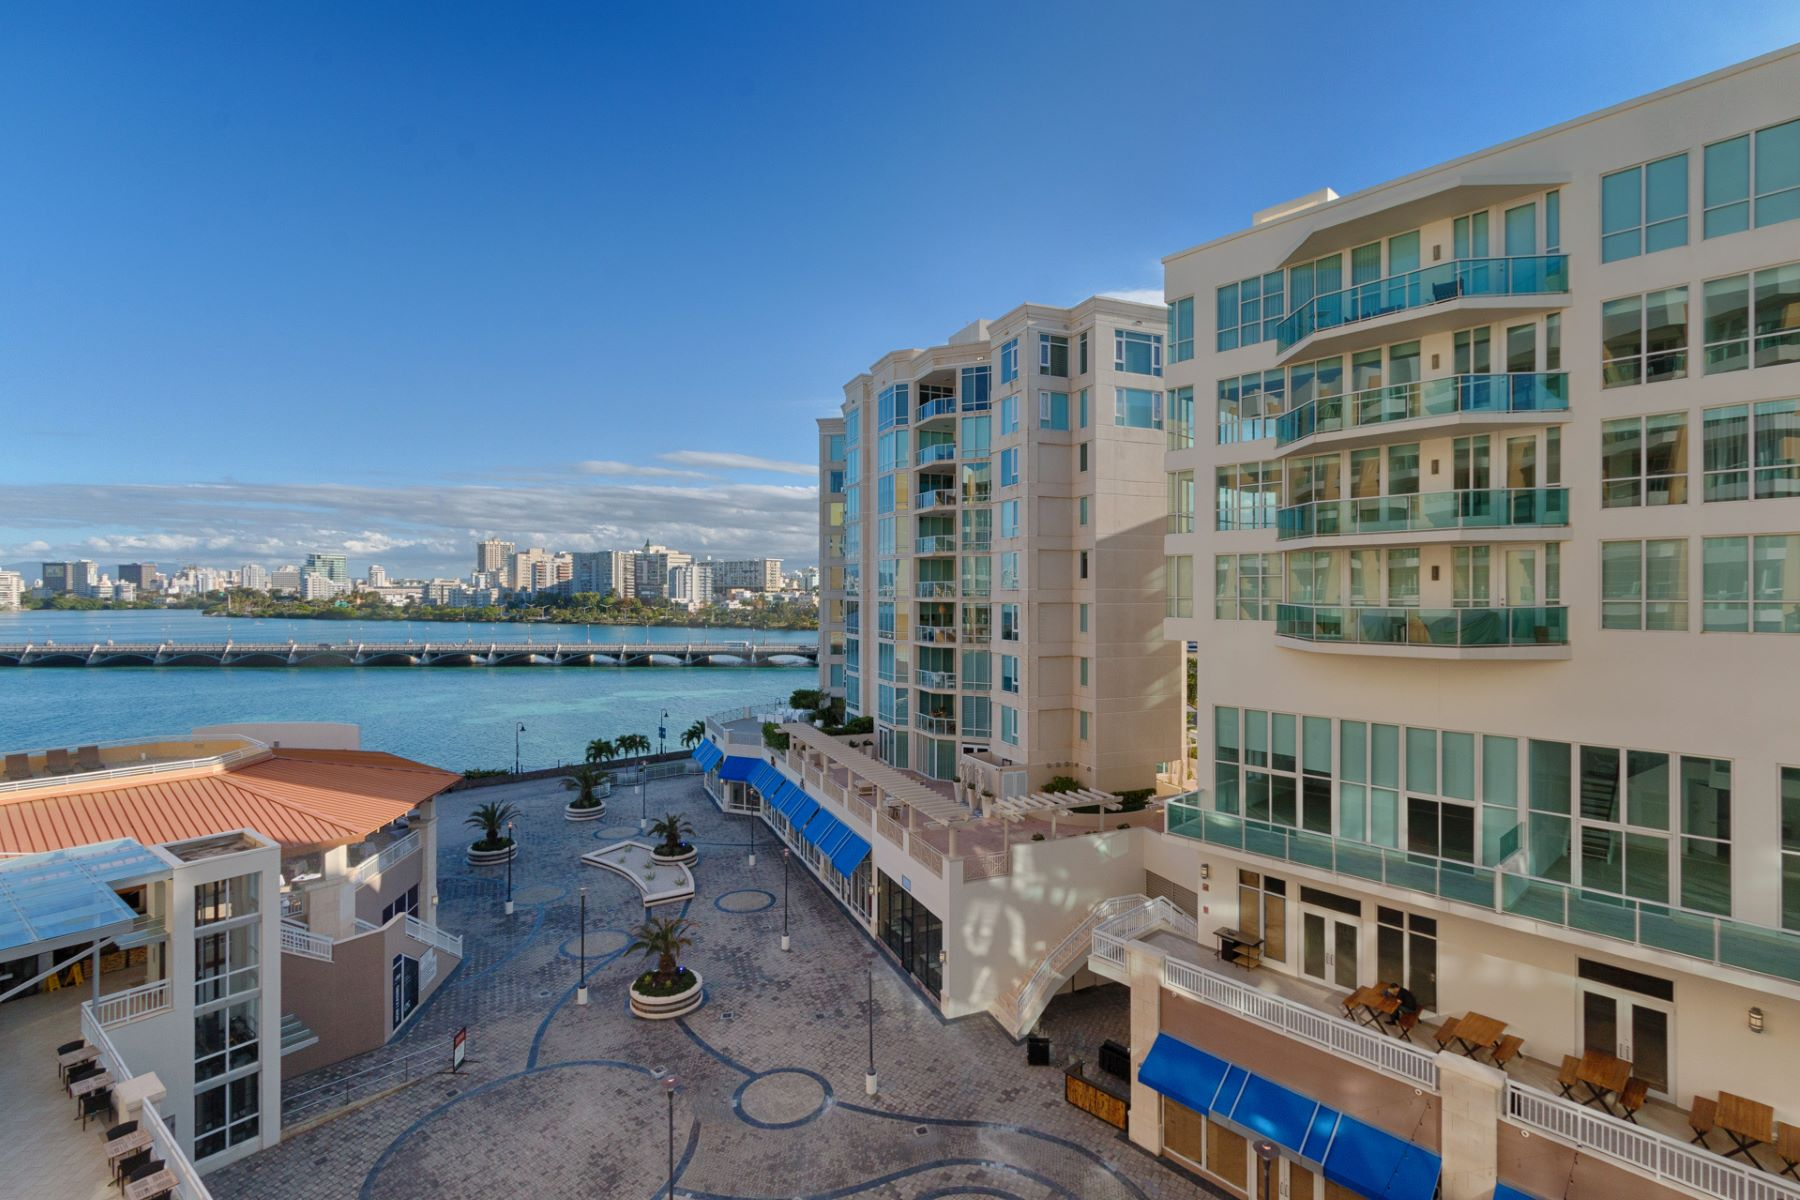 Additional photo for property listing at Exciting Sixth Floor Residence with Private Pool at Bahia Plaza 25 Munoz Rivera Avenue apt 601 San Juan, Puerto Rico 00901 푸에르토리코